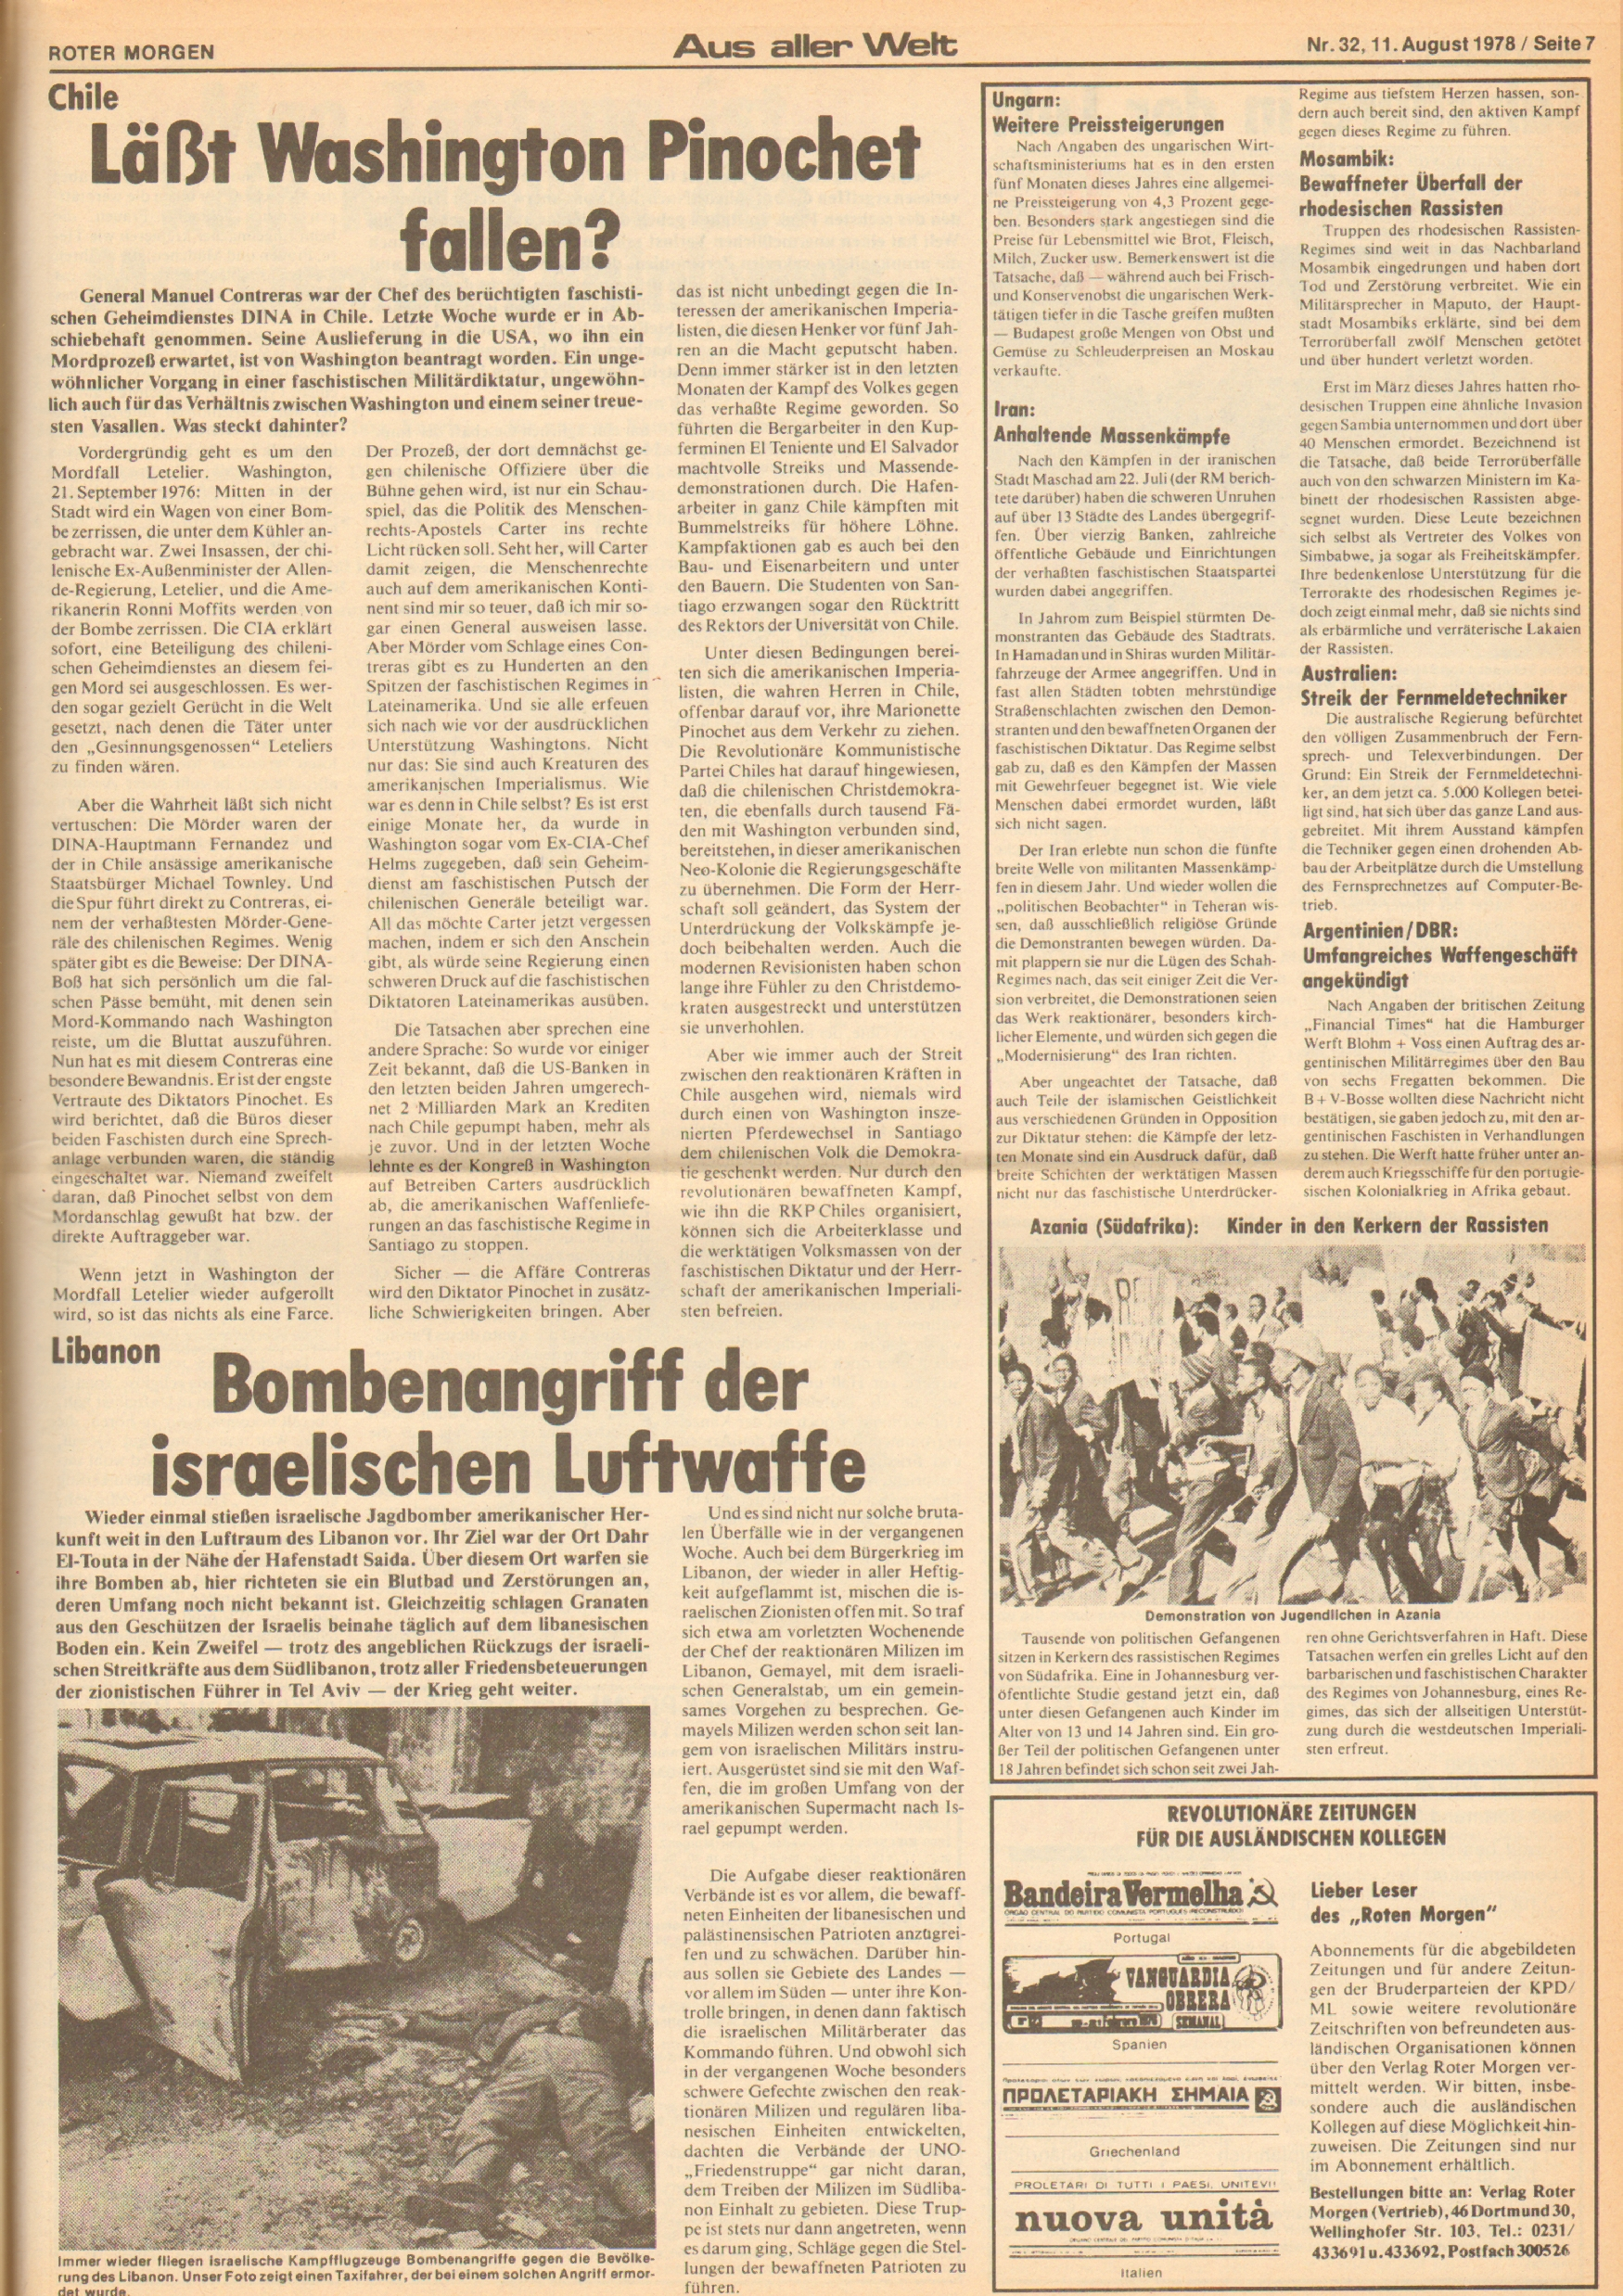 Roter Morgen, 12. Jg., 11. August 1978, Nr. 32, Seite 7